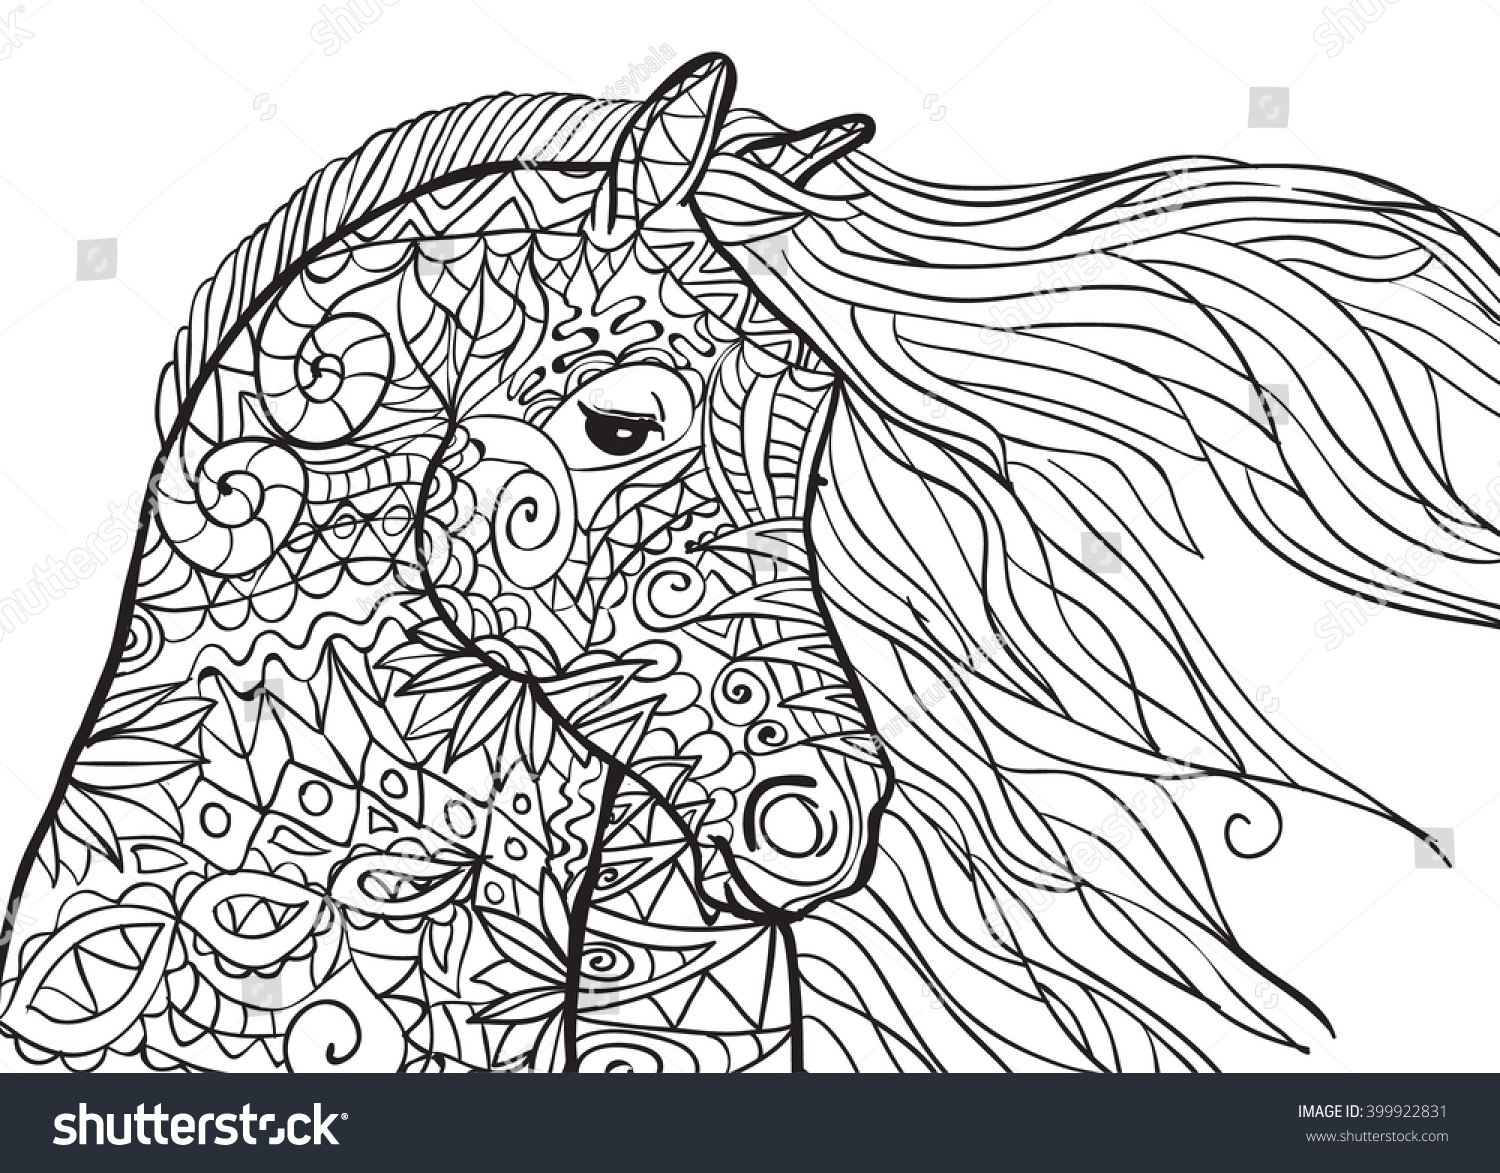 Hand Drawn Coloring Pages Horses Head Stock Vector 399922831